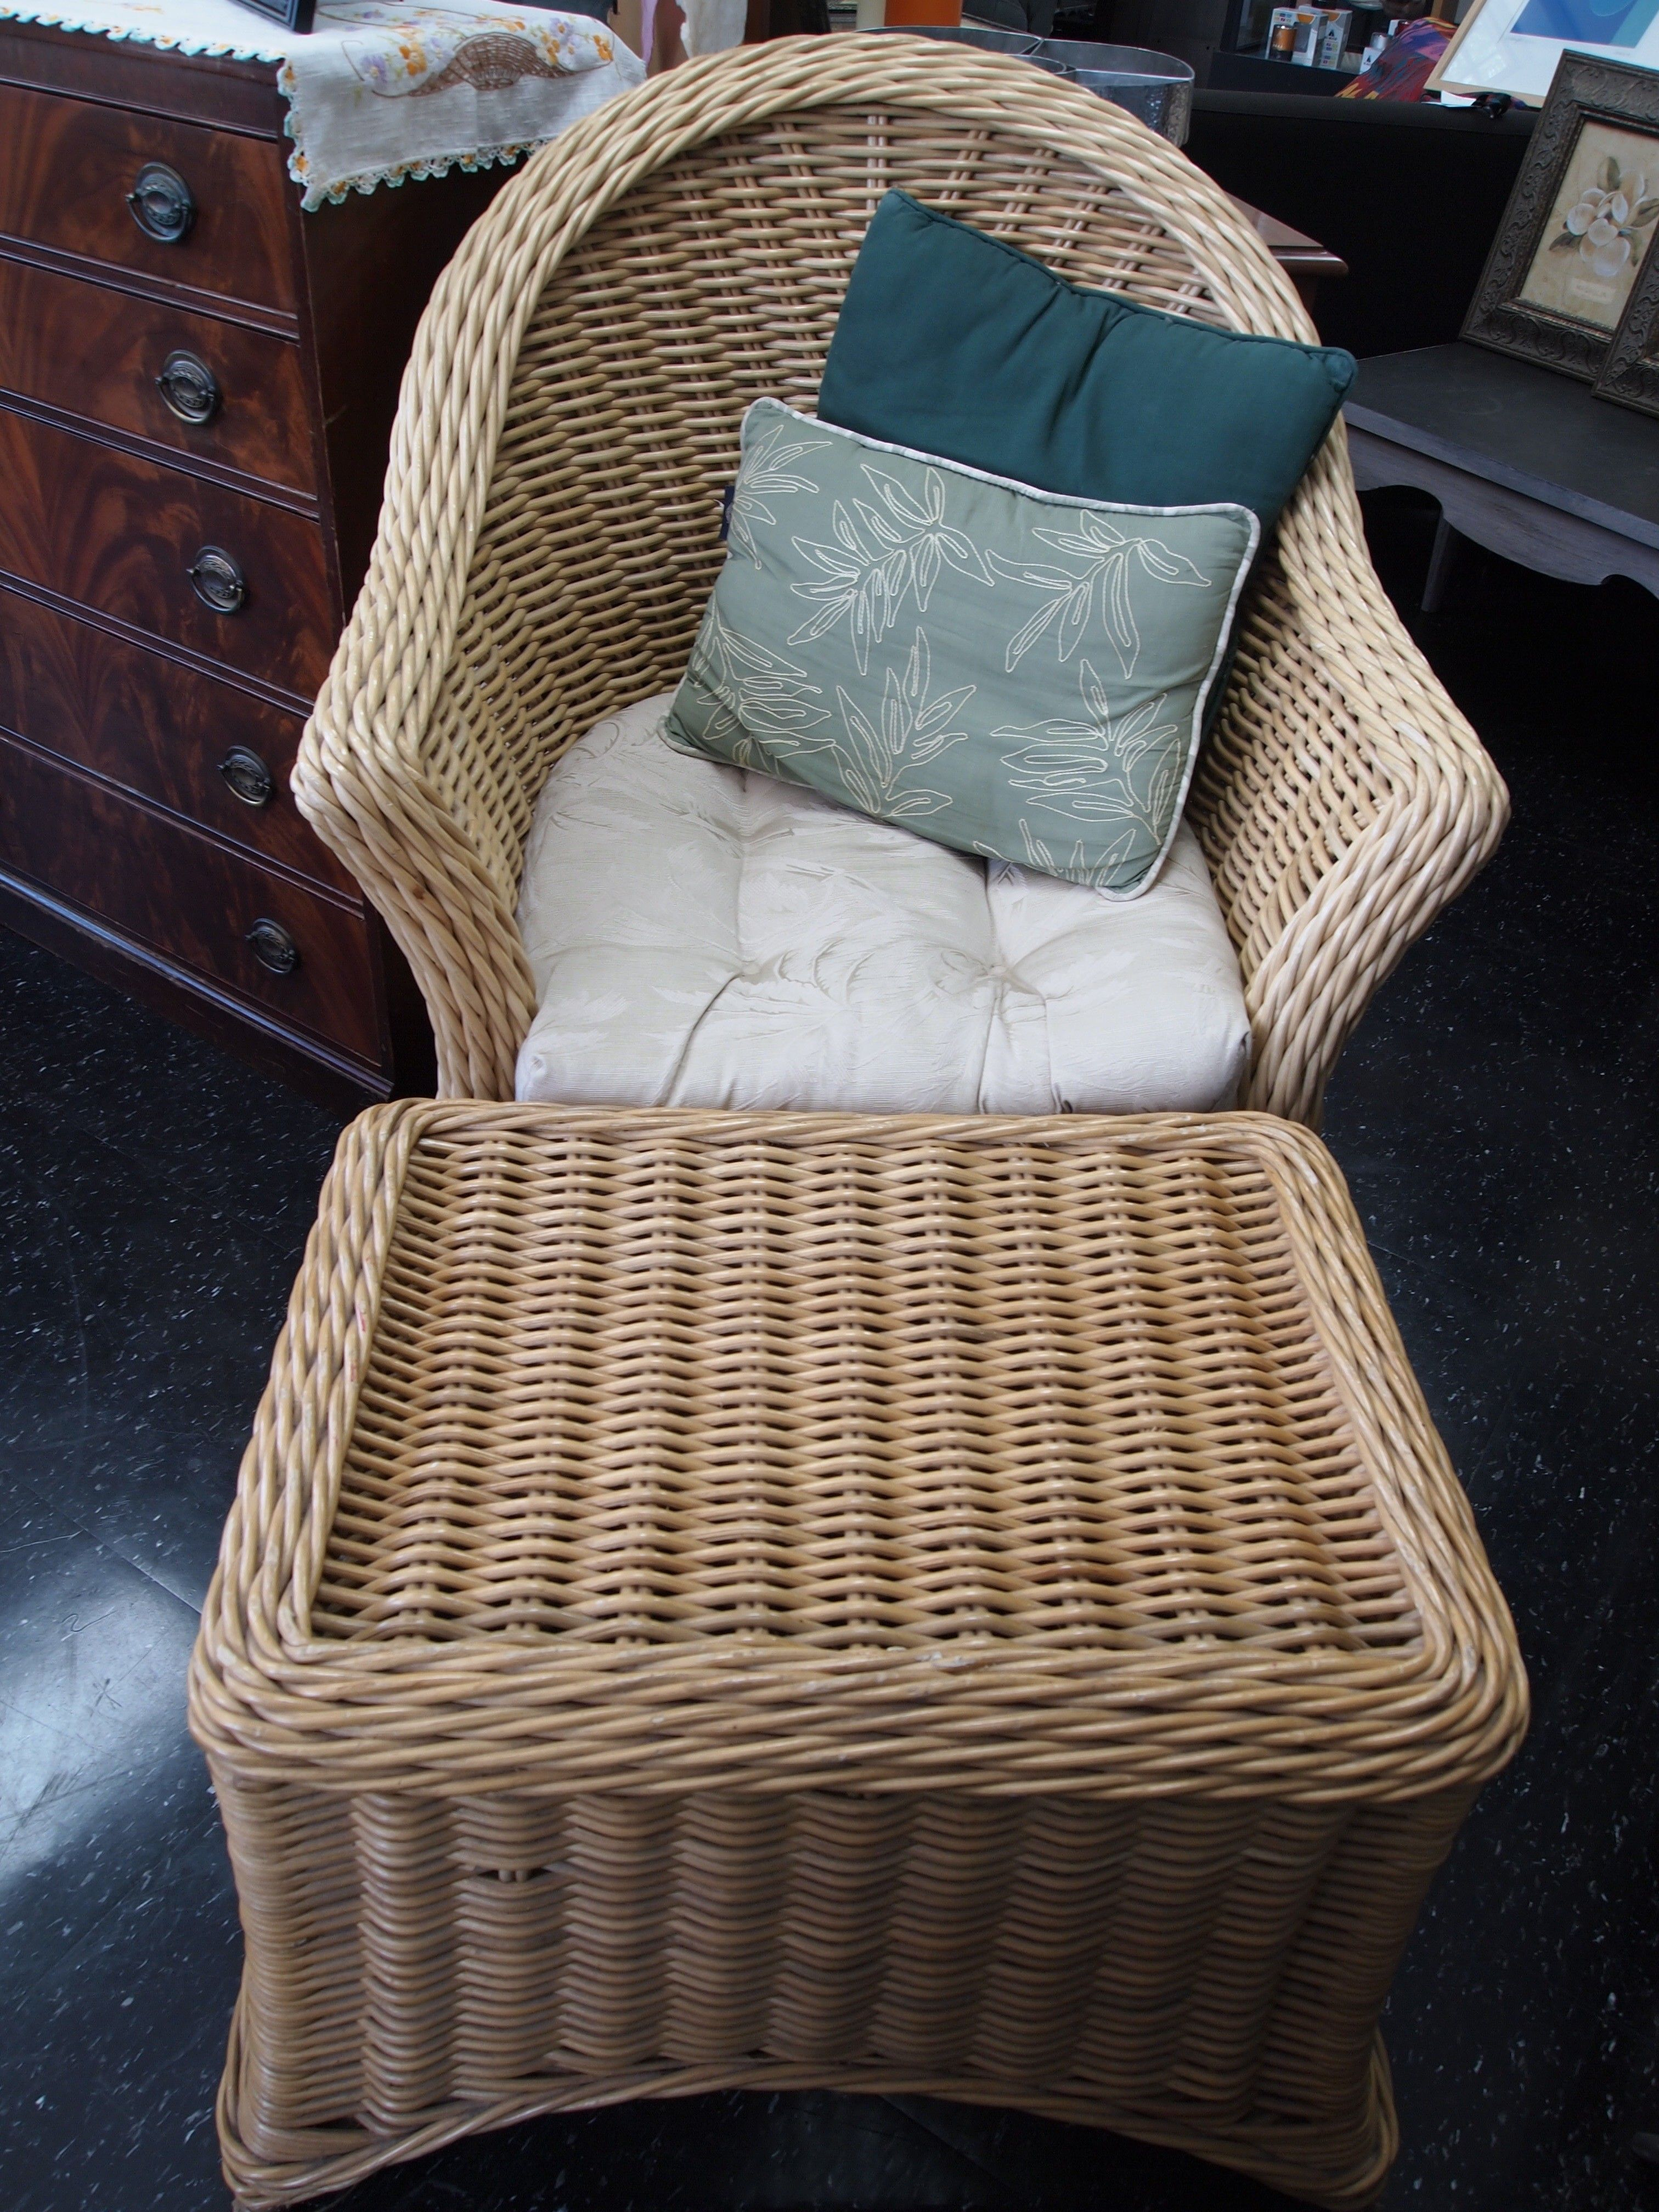 Bamboo Rattan Chair And Ottoman $190   Chicago Http://furnishly.com/